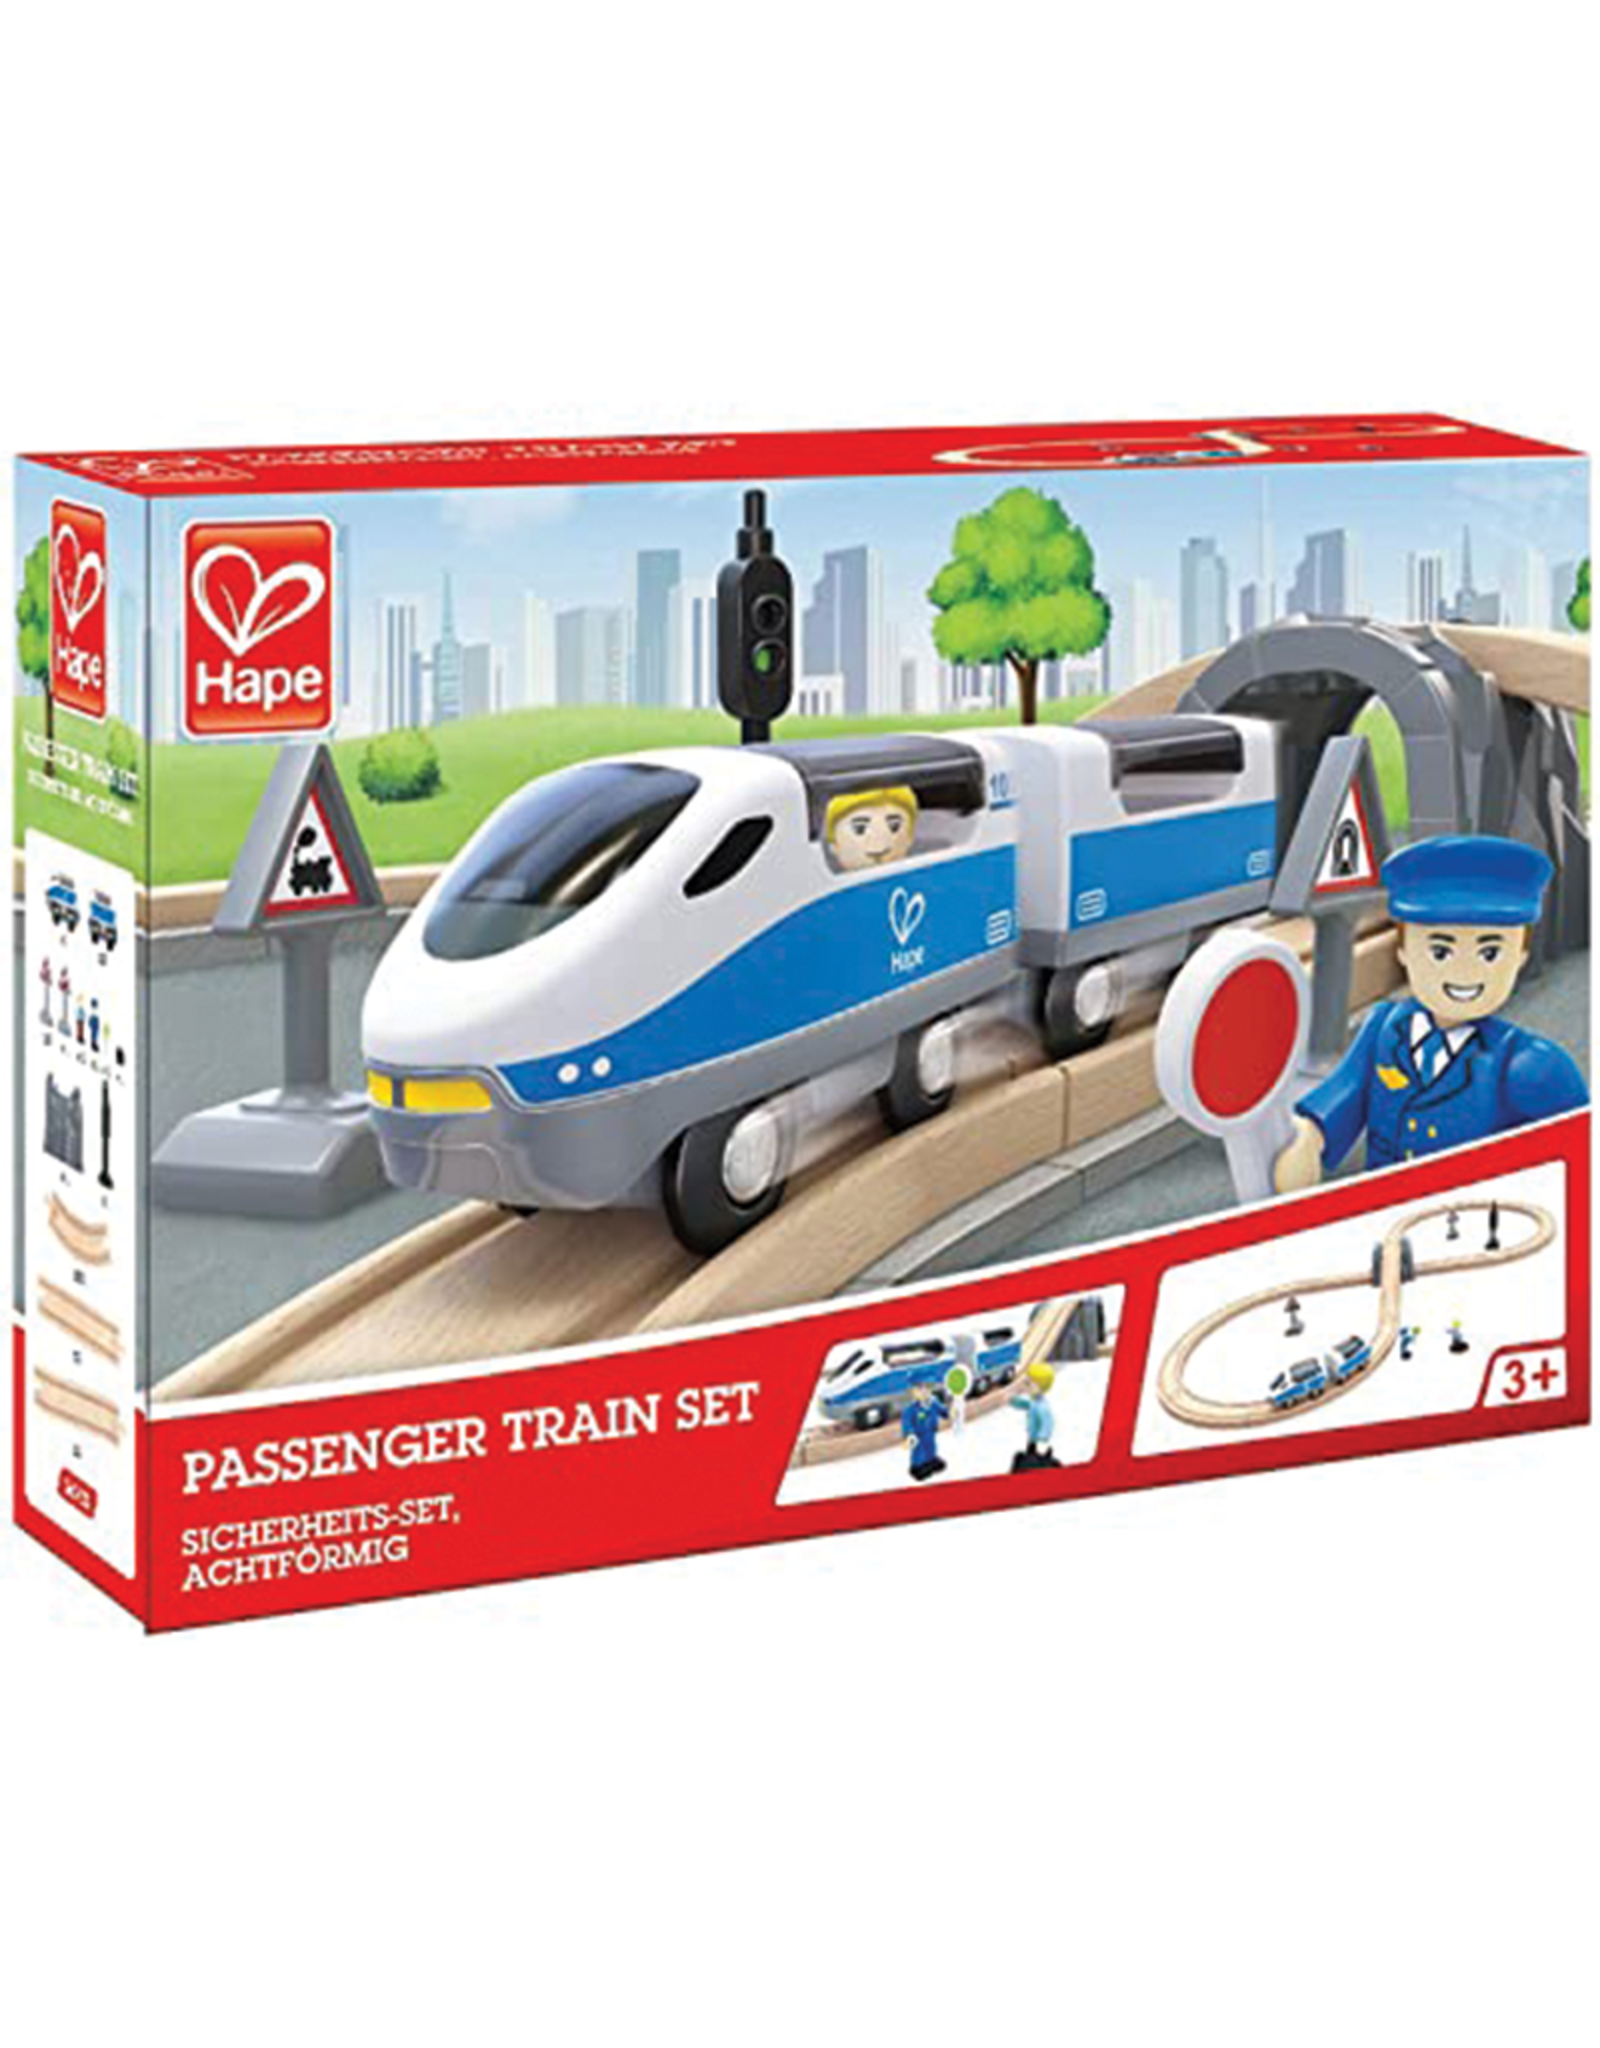 Hape Passenger Train Set